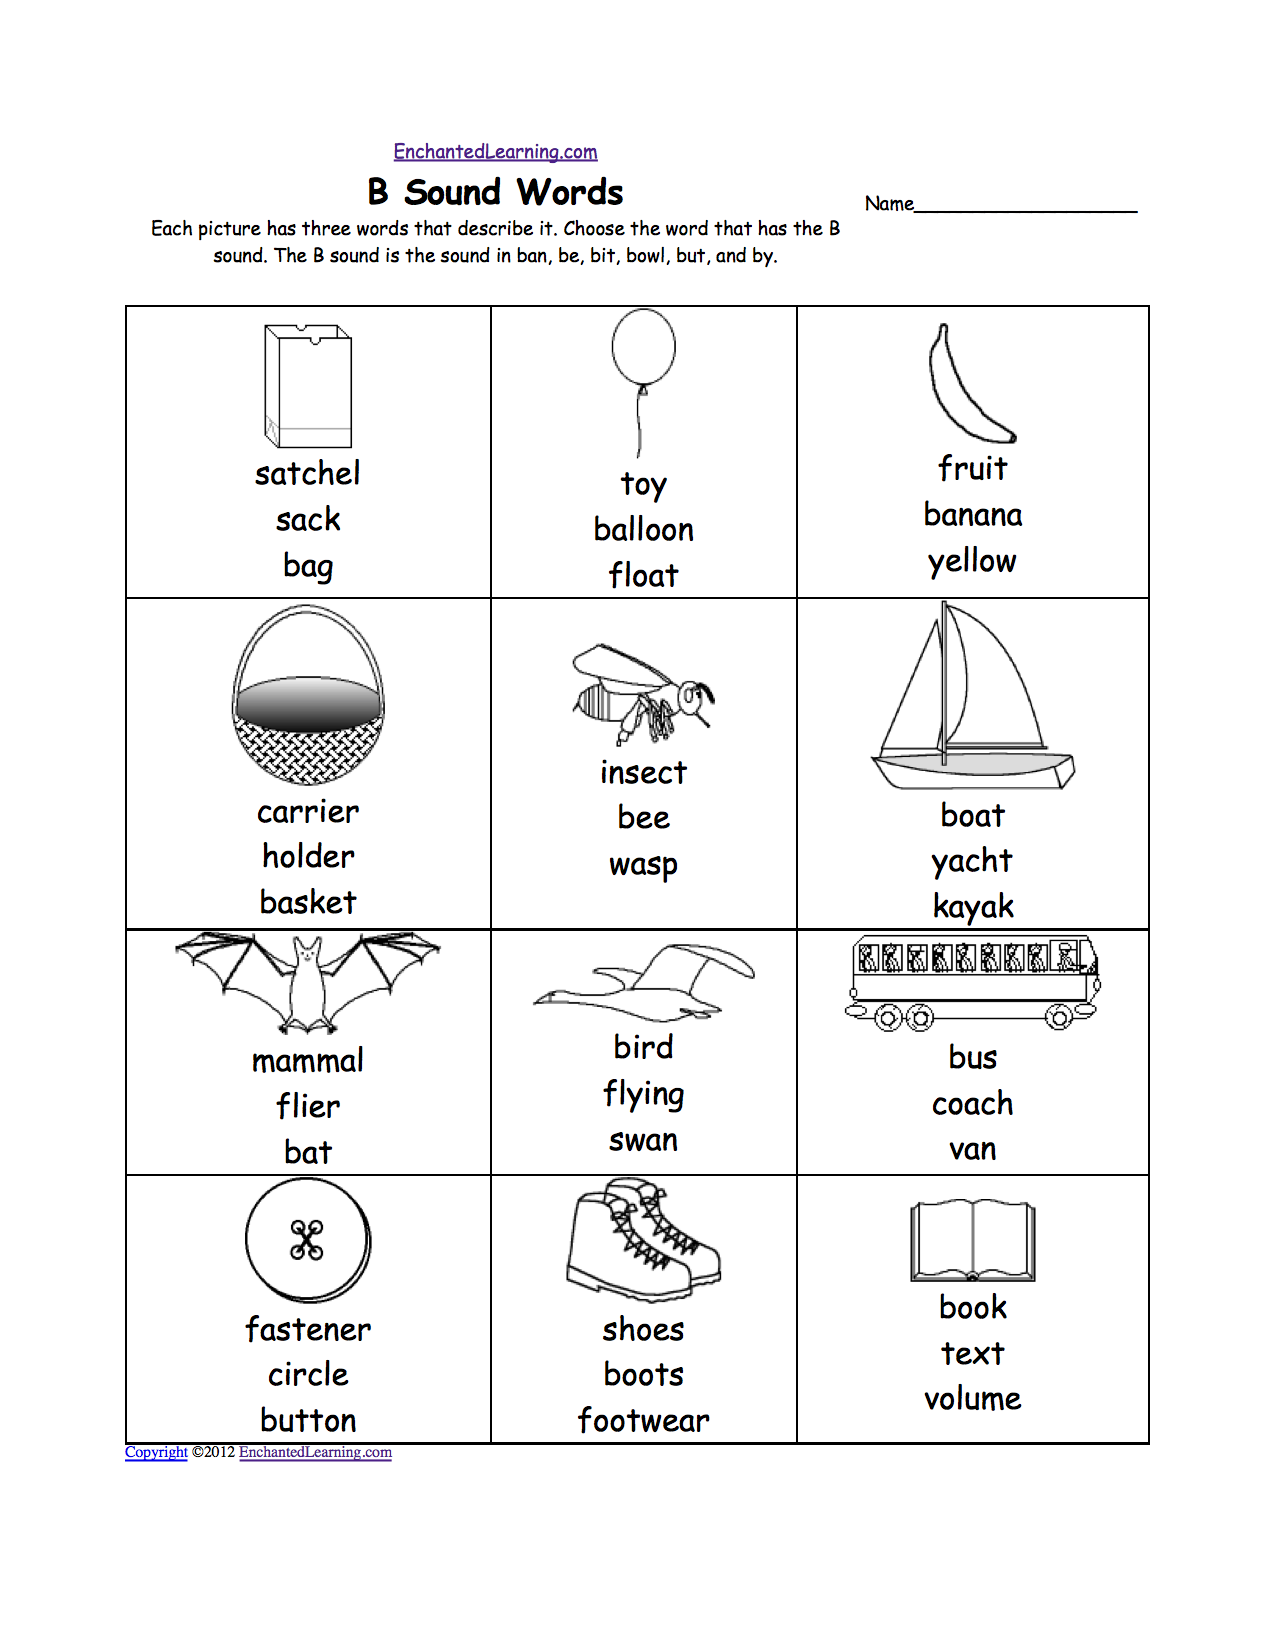 Aldiablosus  Pleasant Phonics Worksheets Multiple Choice Worksheets To Print  With Excellent Quotbquot Sound Phonics Worksheet Multiple Choice Each Picture Has Three Words That Describe It Choose The Word That Has A Quotbquot Sound The Quotbquot Sound Is The Sound  With Extraordinary Number Bonds To  Worksheet Ks Also Worksheet For Synonyms In Addition Grade  Writing Worksheets And Place Value Worksheets Year  As Well As Social Studies Worksheets Free Additionally Word Problems For Grade  Math Worksheets From Enchantedlearningcom With Aldiablosus  Excellent Phonics Worksheets Multiple Choice Worksheets To Print  With Extraordinary Quotbquot Sound Phonics Worksheet Multiple Choice Each Picture Has Three Words That Describe It Choose The Word That Has A Quotbquot Sound The Quotbquot Sound Is The Sound  And Pleasant Number Bonds To  Worksheet Ks Also Worksheet For Synonyms In Addition Grade  Writing Worksheets From Enchantedlearningcom